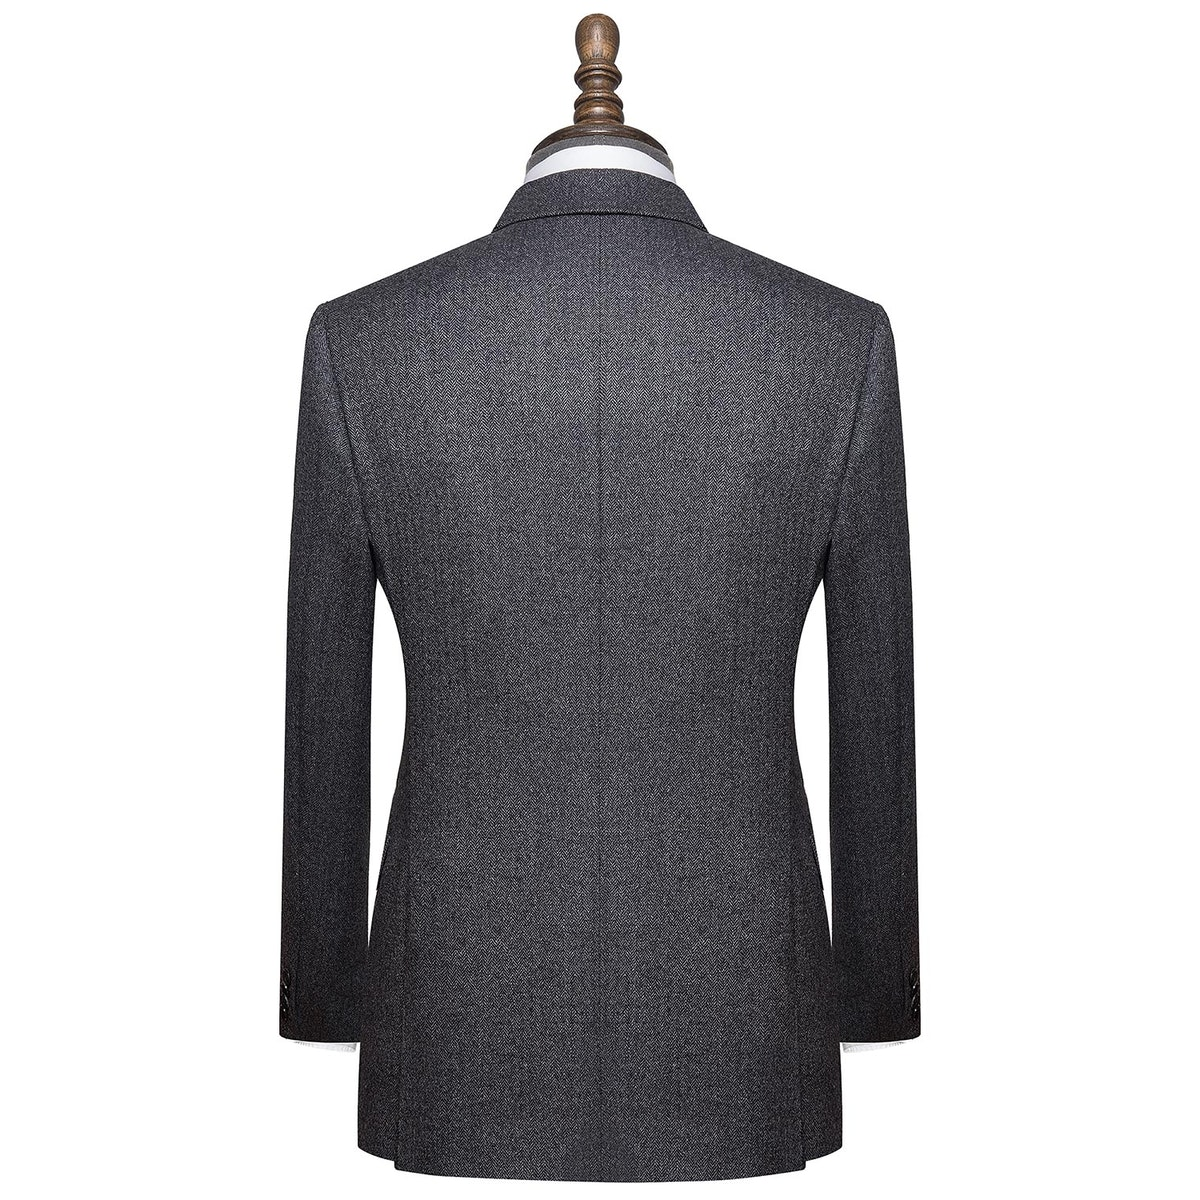 InStitchu Collection The York mens suit